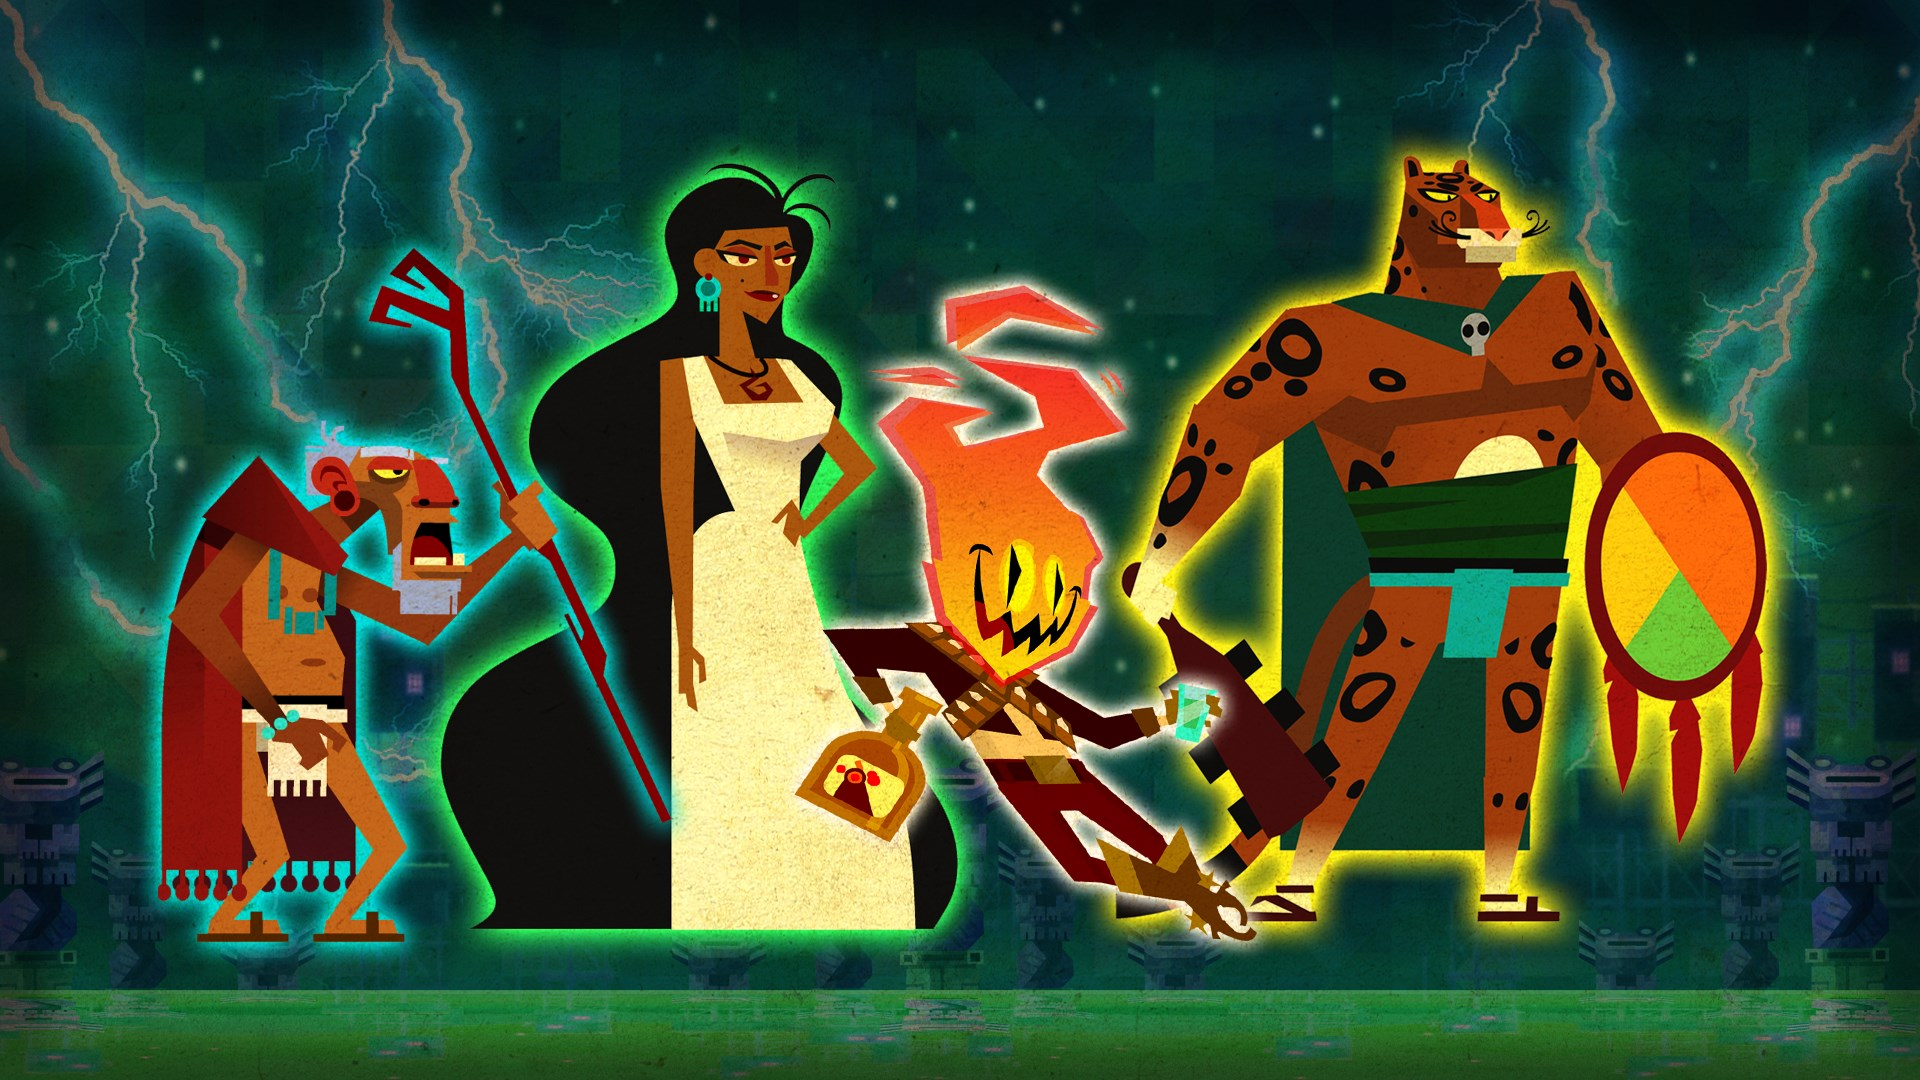 Guacamelee! STCE 'Frenemies' Character Pack